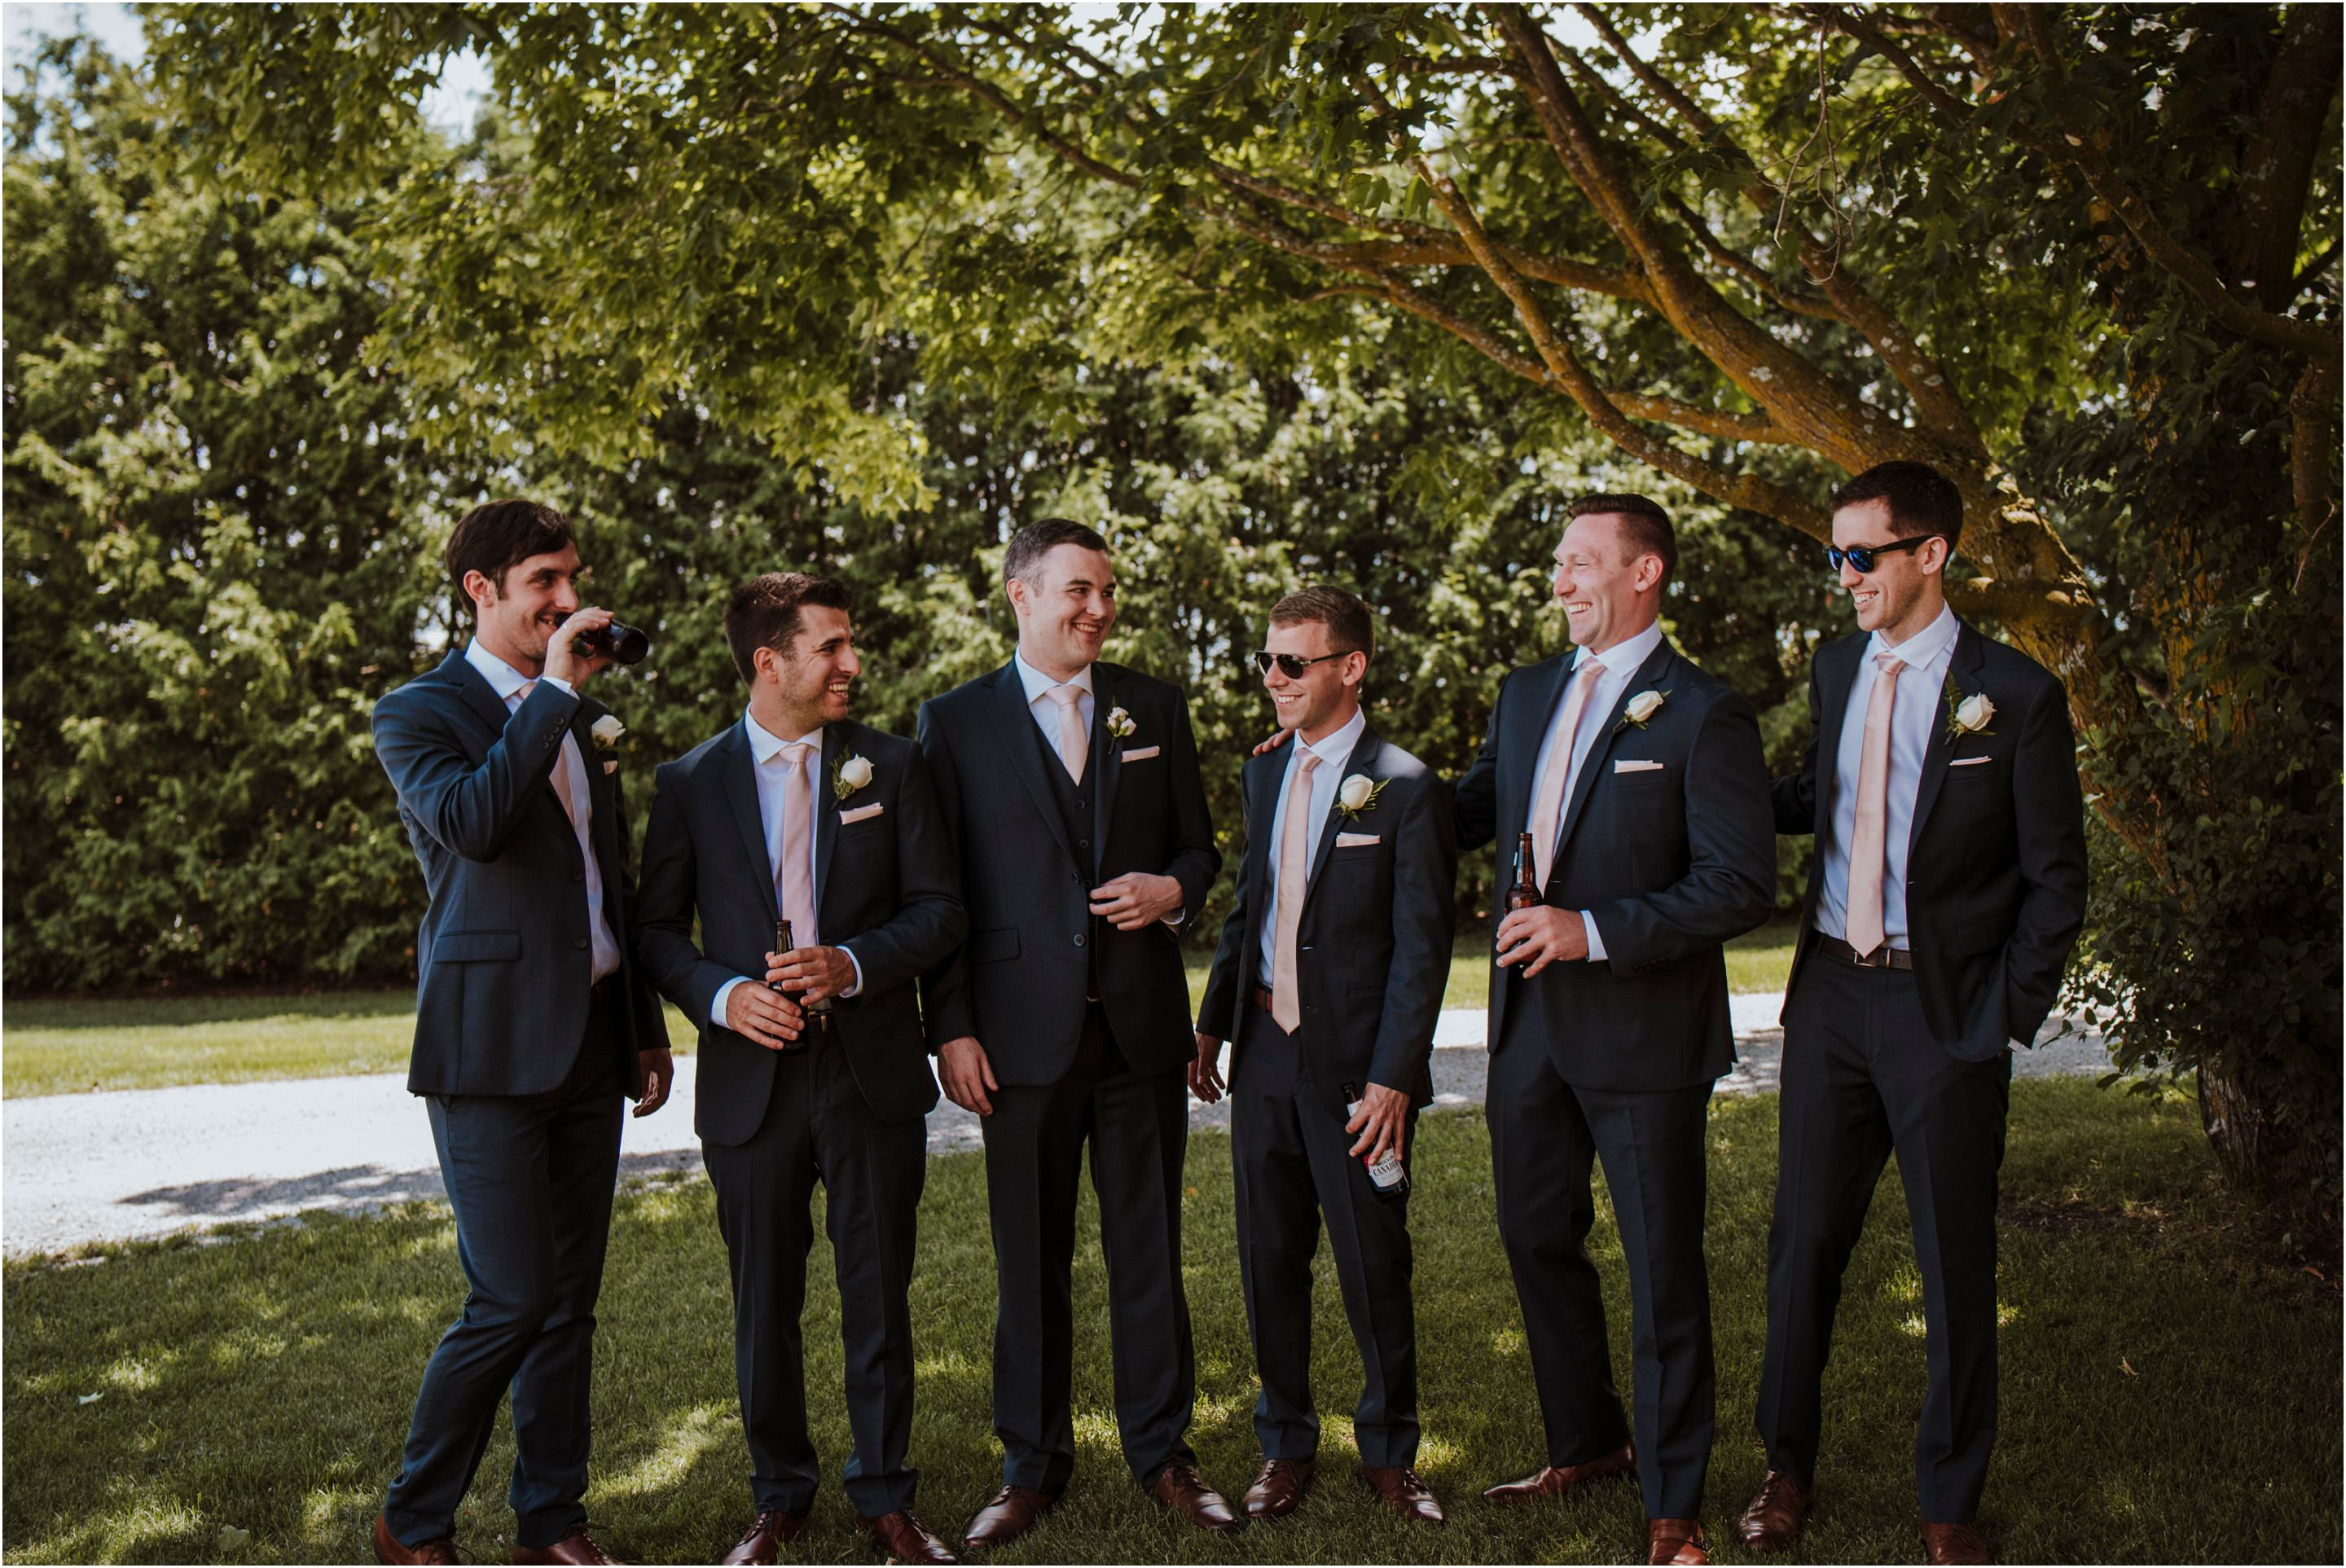 Ottawa Valley Wedding - Cindy Lottes Photography